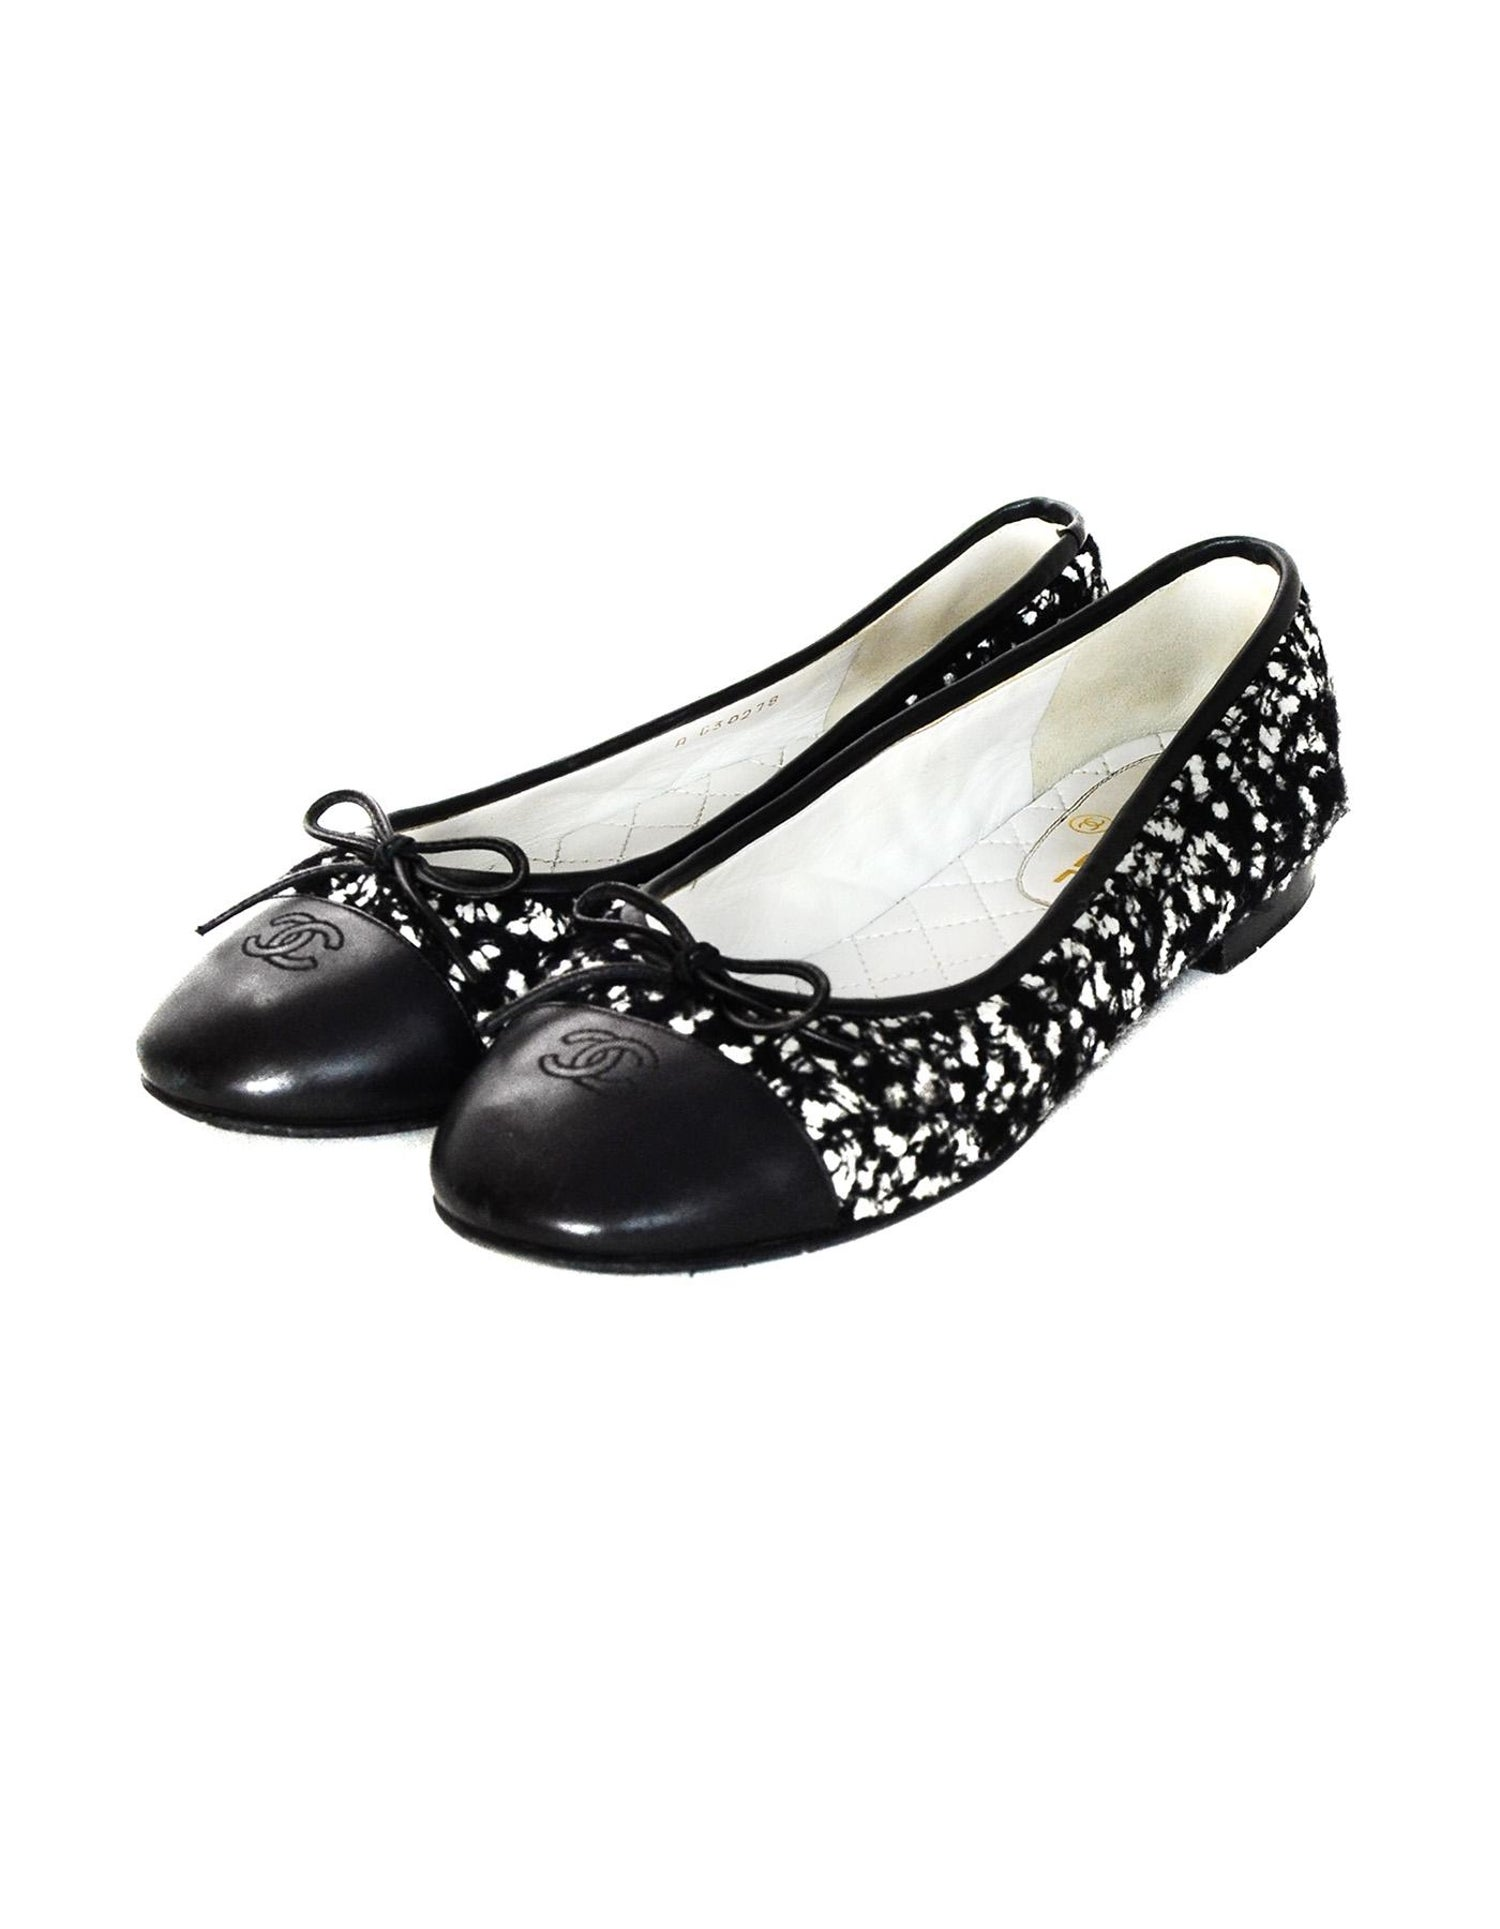 cee22d366 Chanel Black/White Tweed/Leather Cap Toe CC Ballet Flats Sz 39 For Sale at  1stdibs